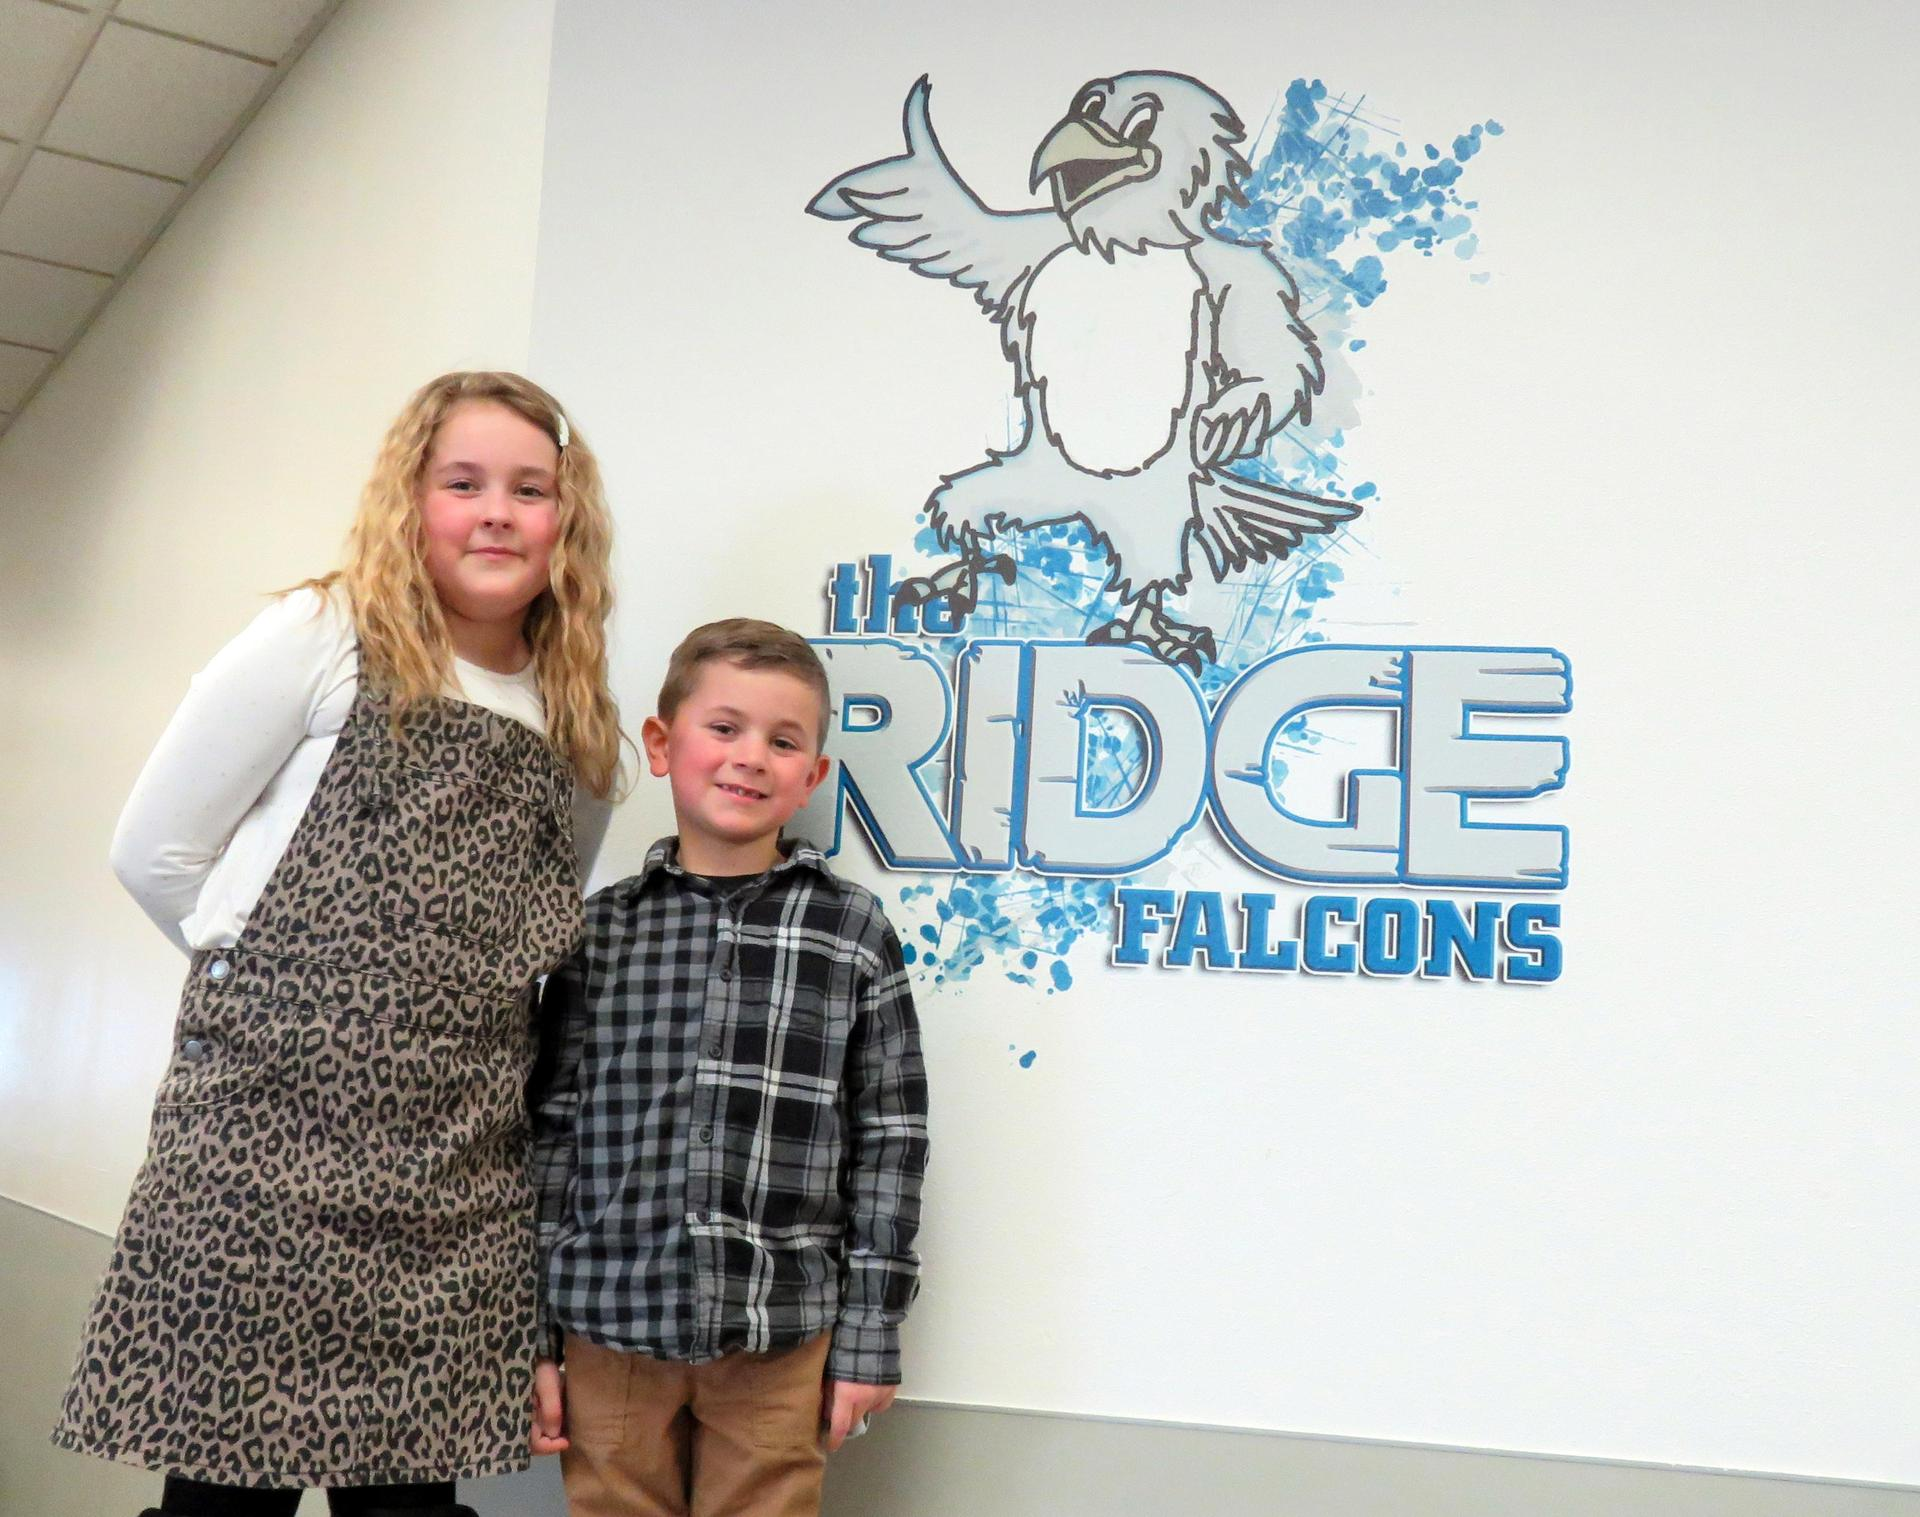 A girl and boy pose in front of the Park Ridge falcon logo